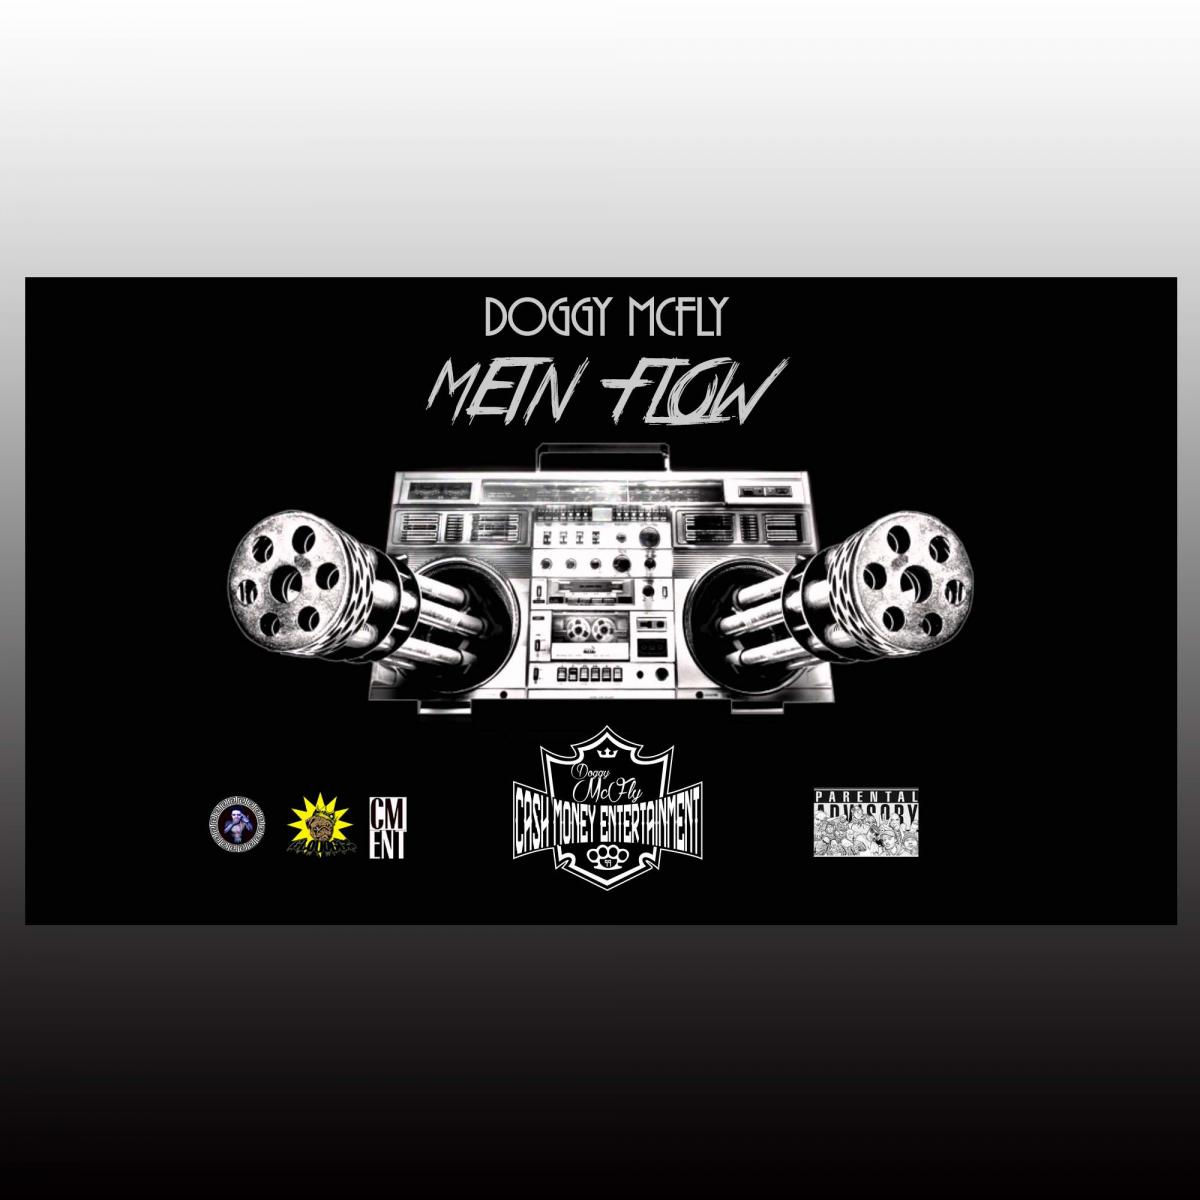 Upcoming: Doggy McFly - Mein Flow